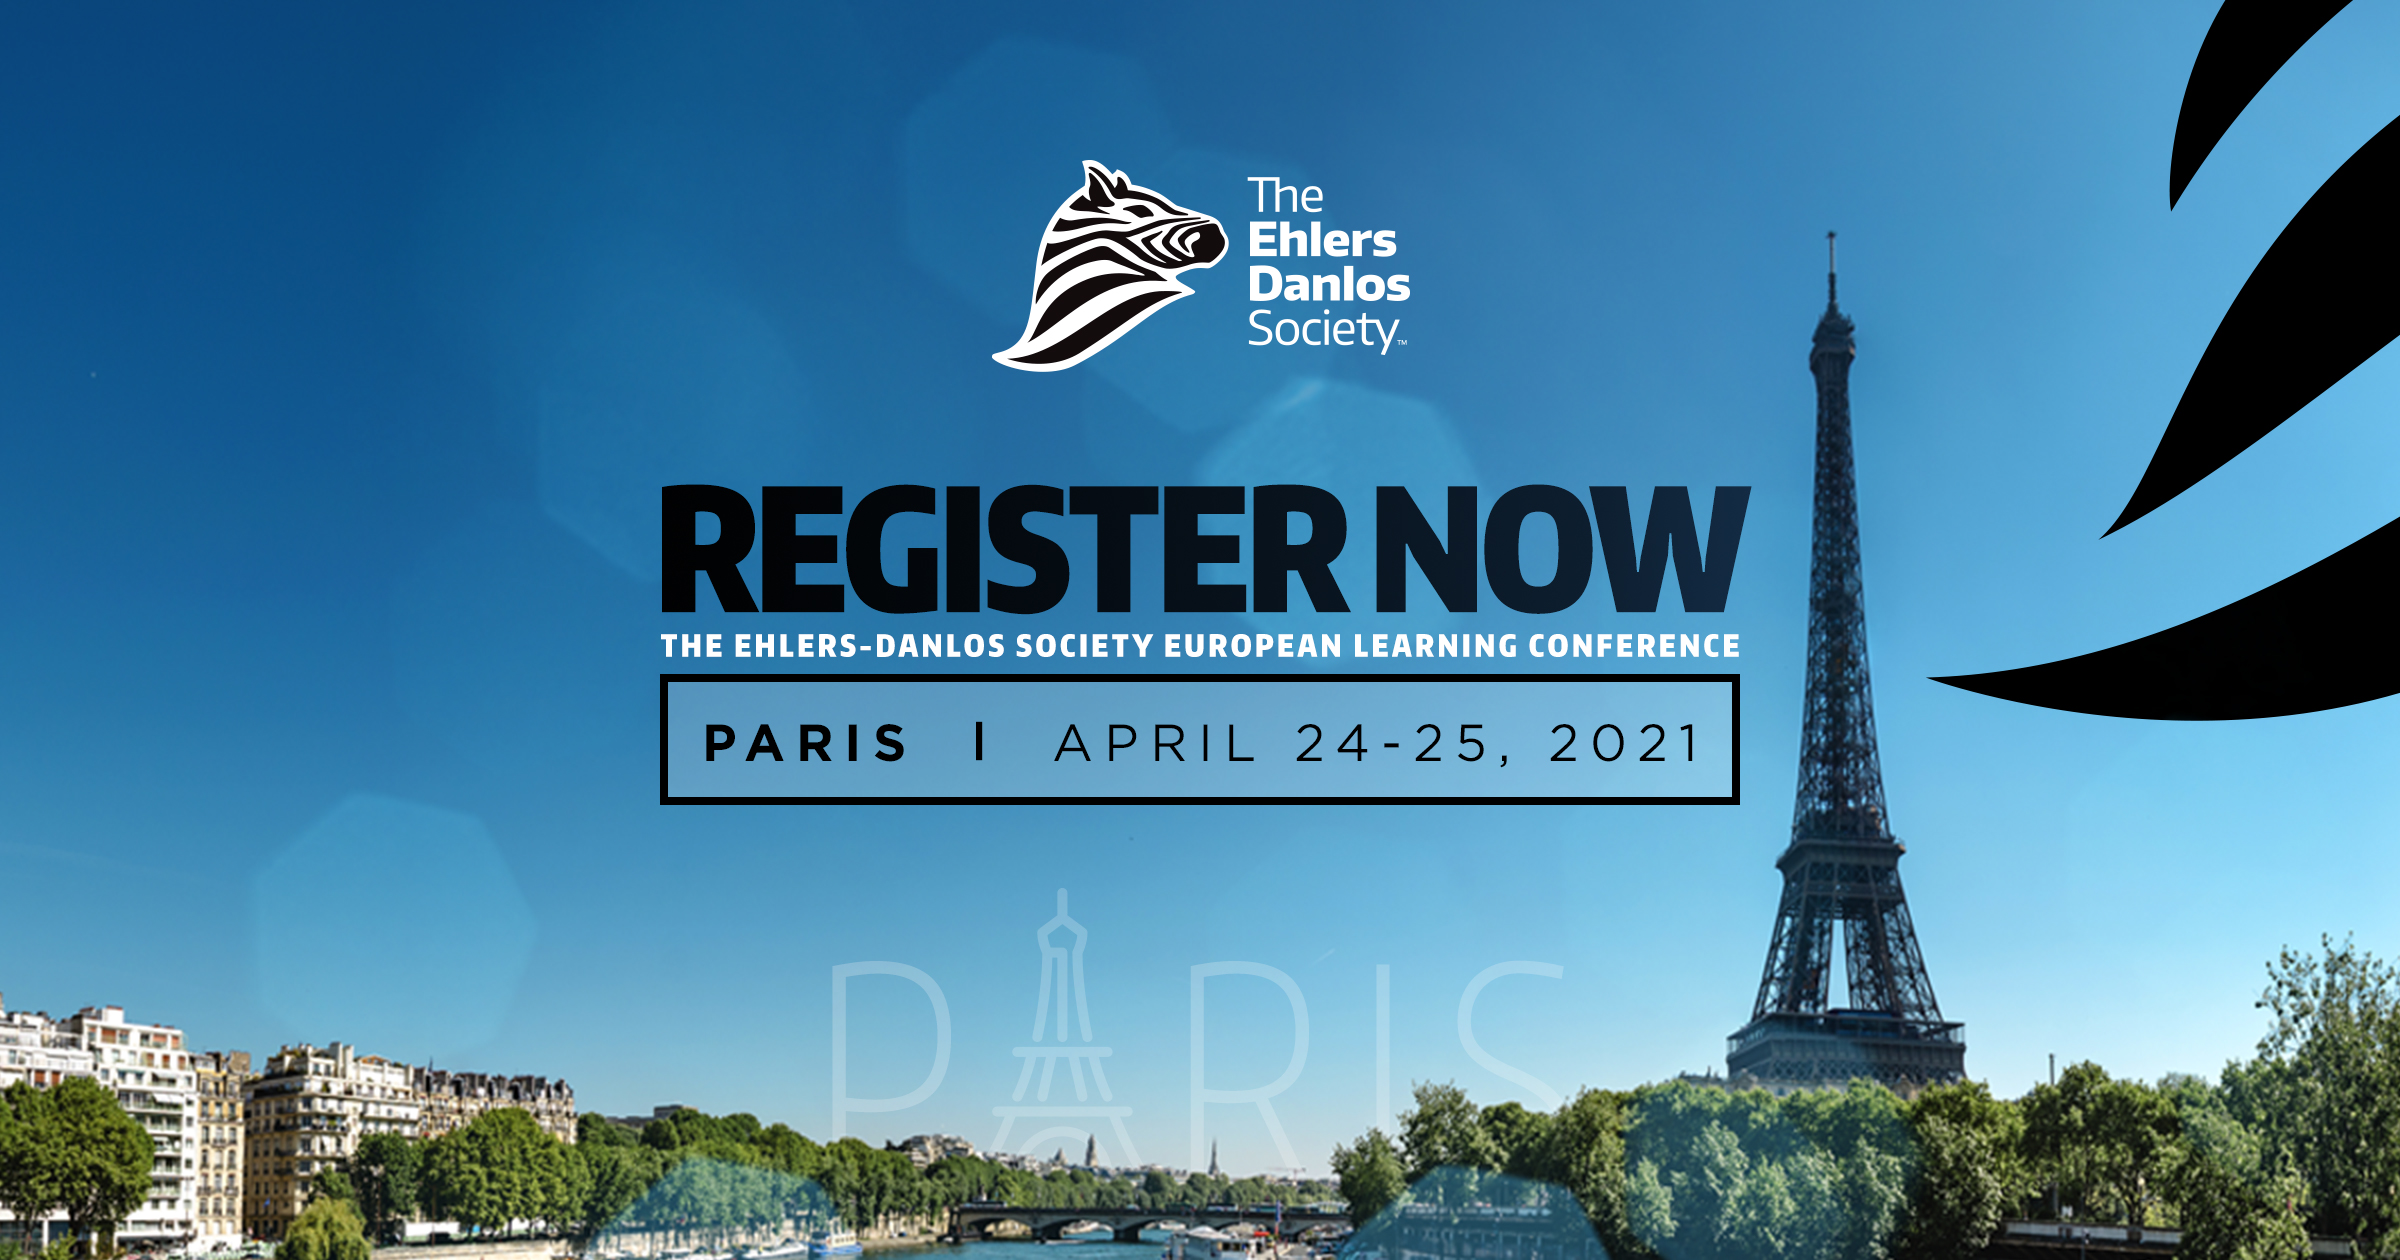 Register now for The Ehlers-Danlos Society Conference in Paris 2021